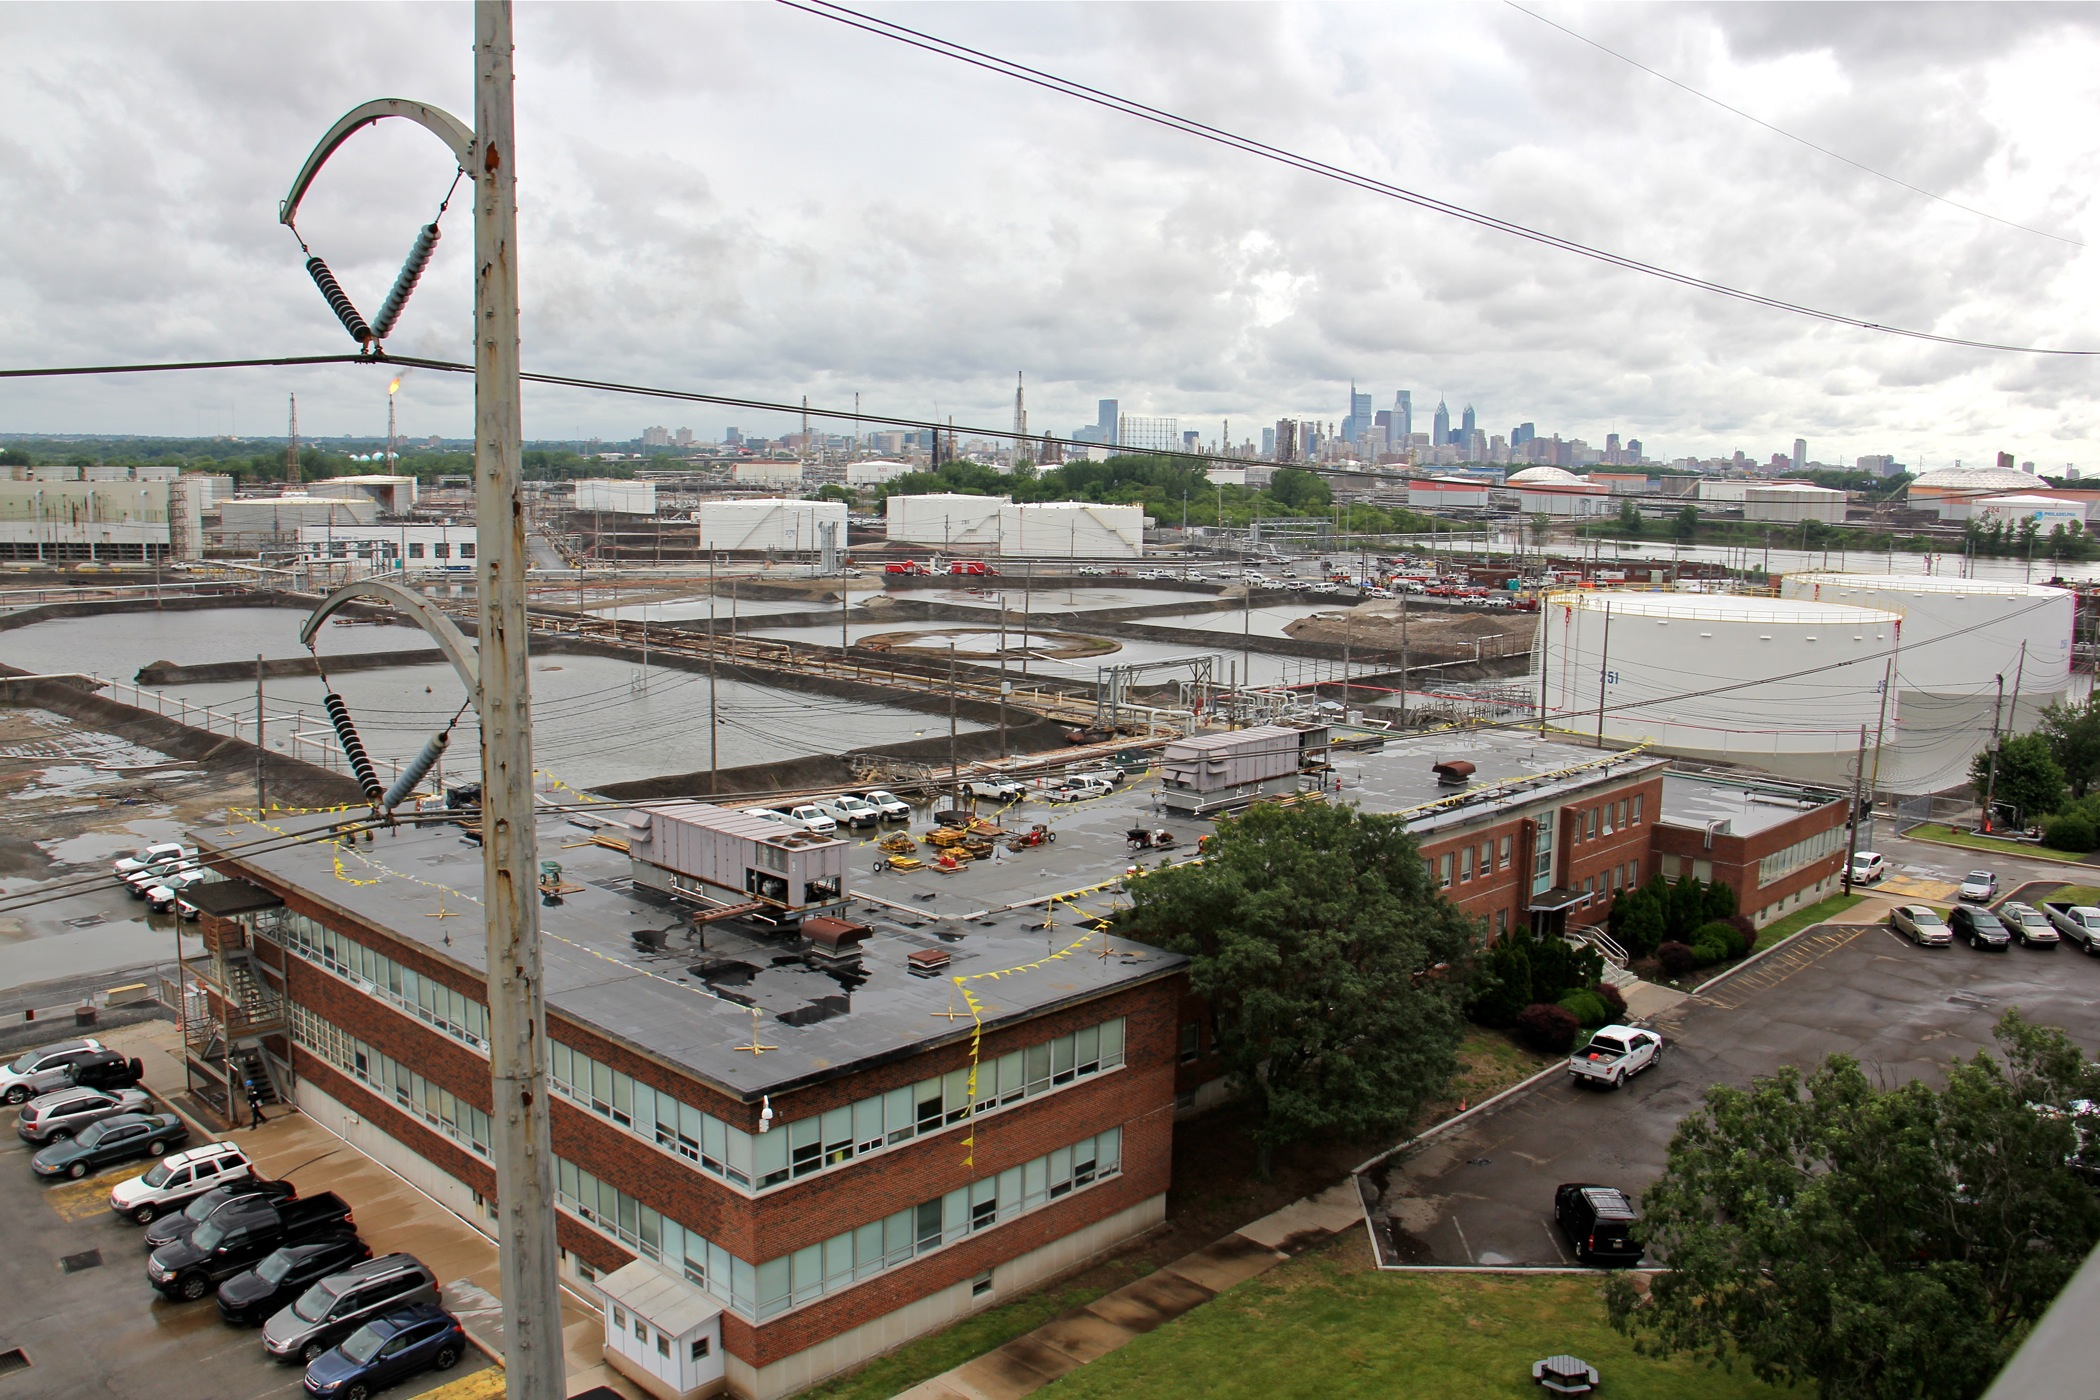 What happens next, now that the refinery's future seems wide open?